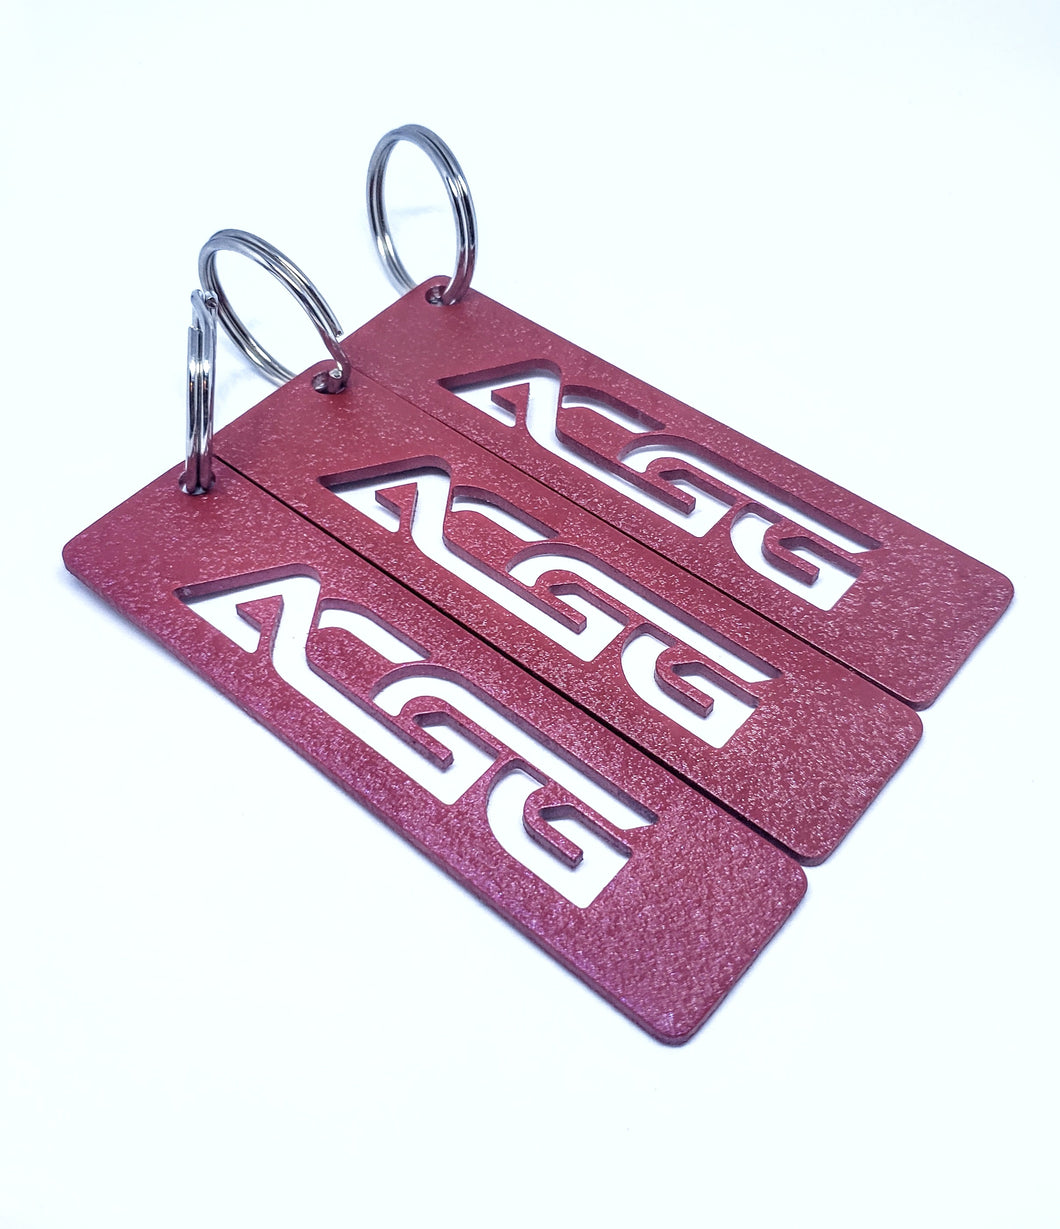 ACGG Tag Wrinkle Red - Small